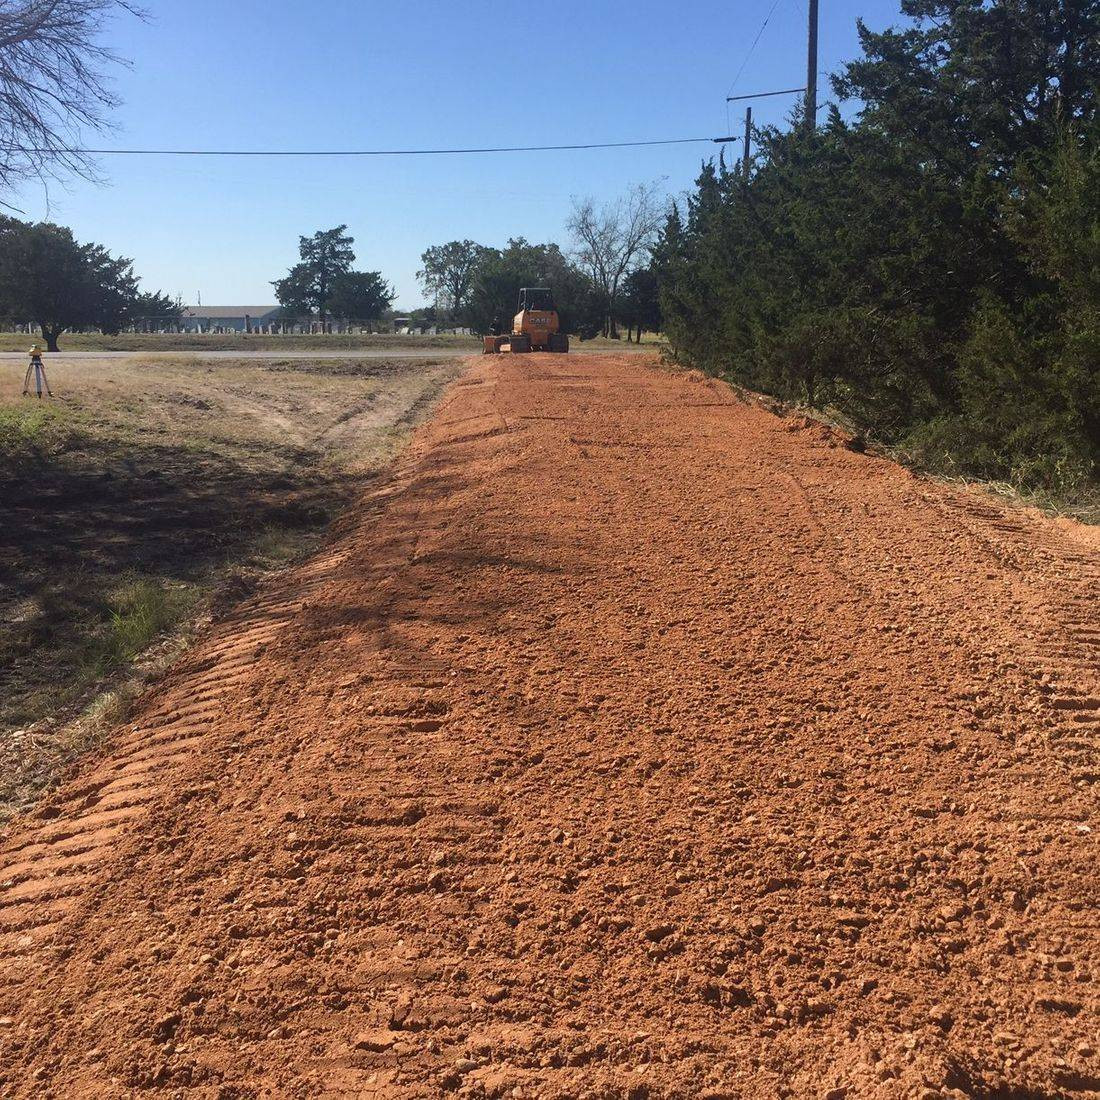 access road, easement road, dozer work, installation of material, install gravel, install roads